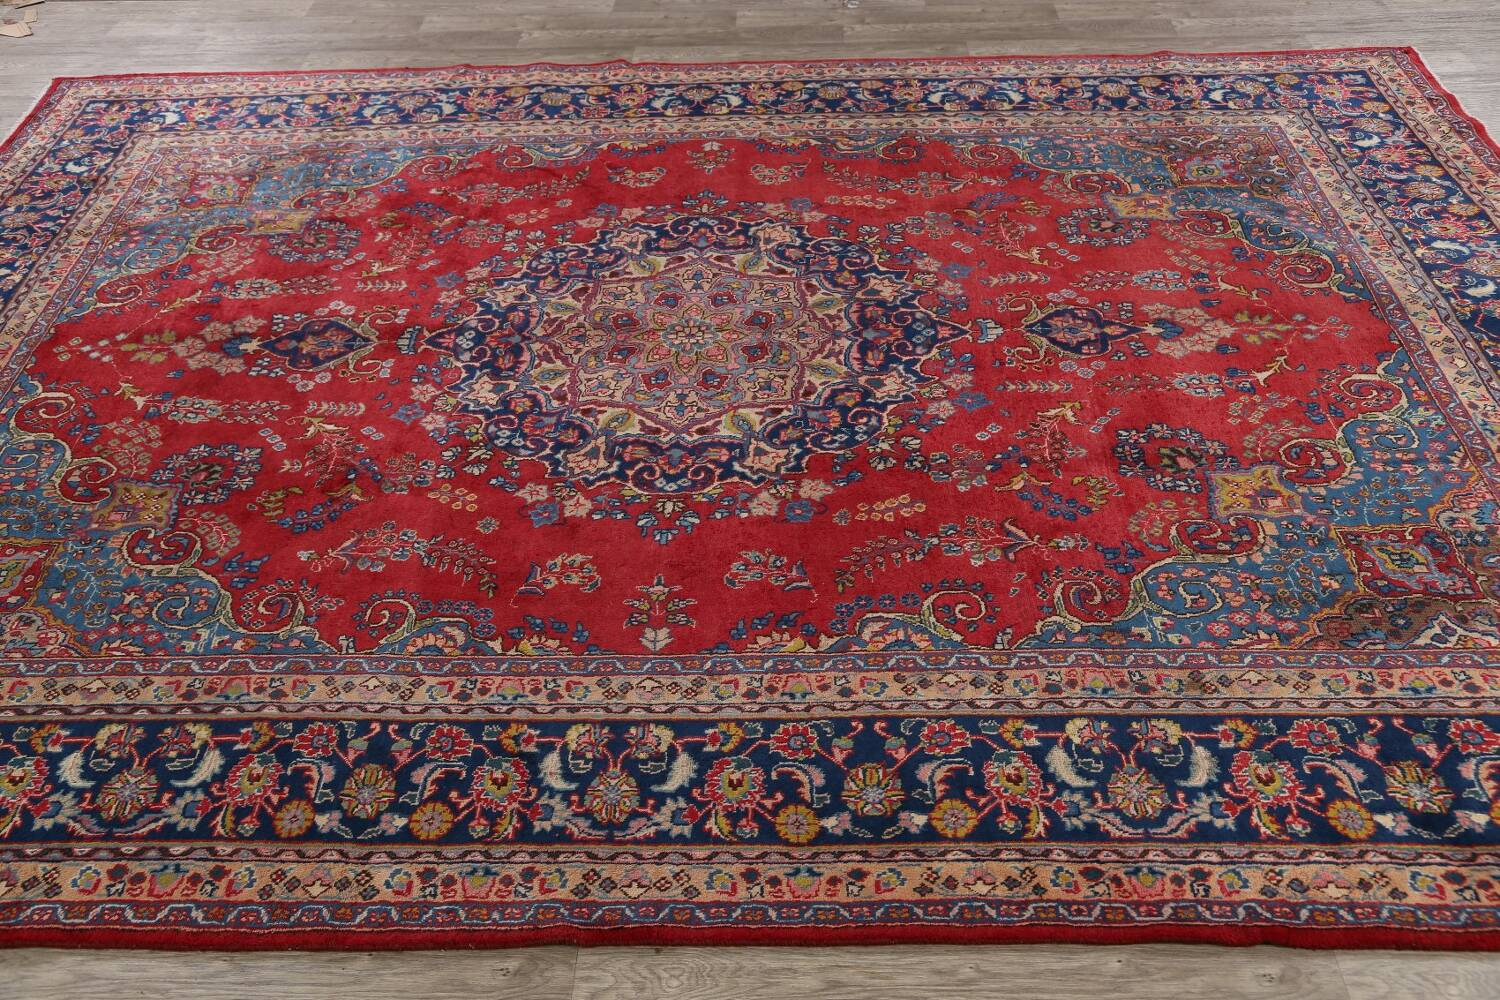 Vintage Floral Red Mashad Persian Area Rug 9x13 image 17